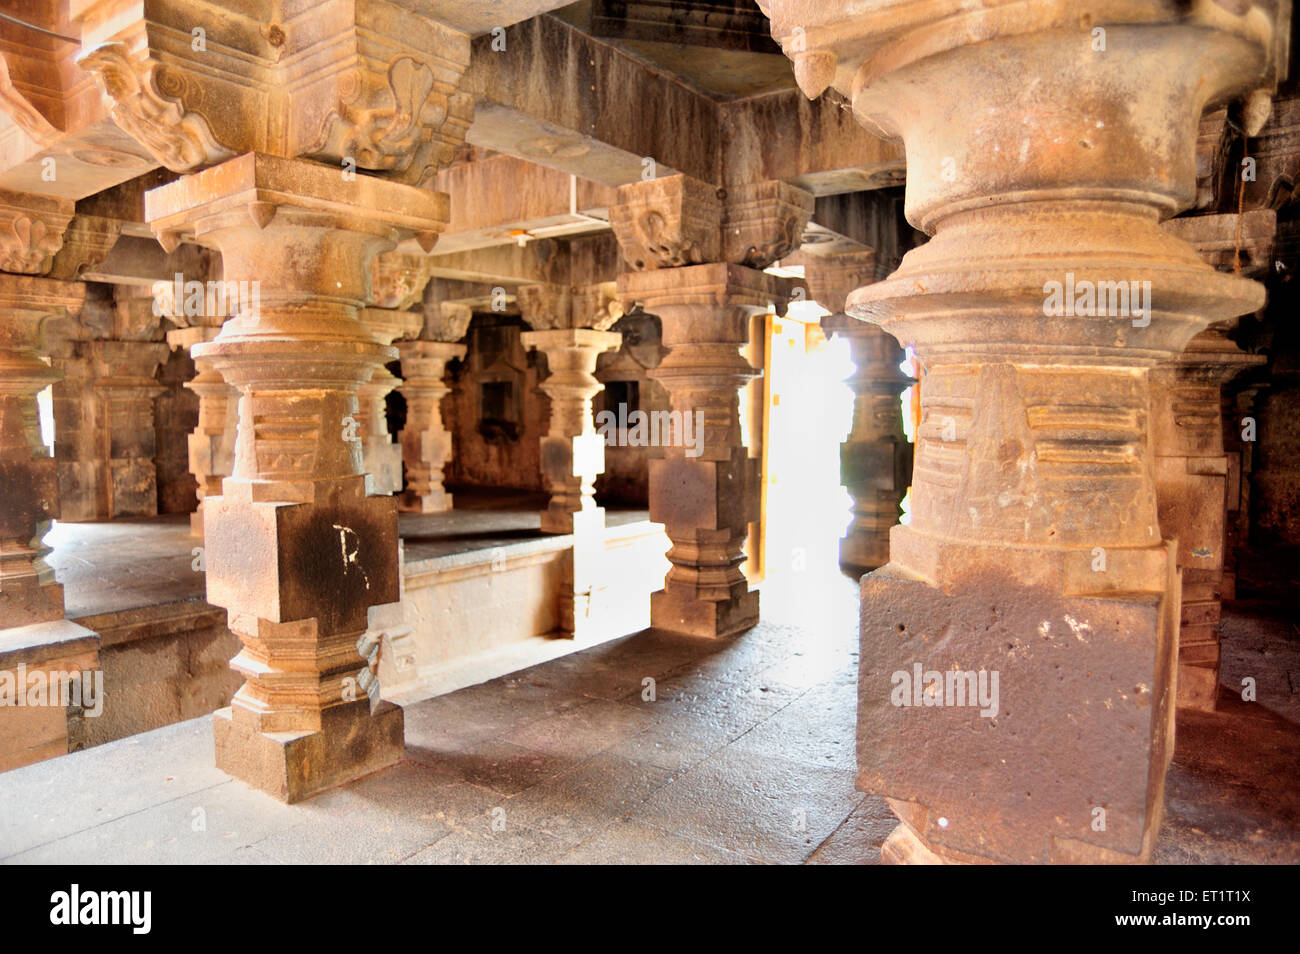 Pillars of narsiha temple at pune Maharashtra India Asia - Stock Image